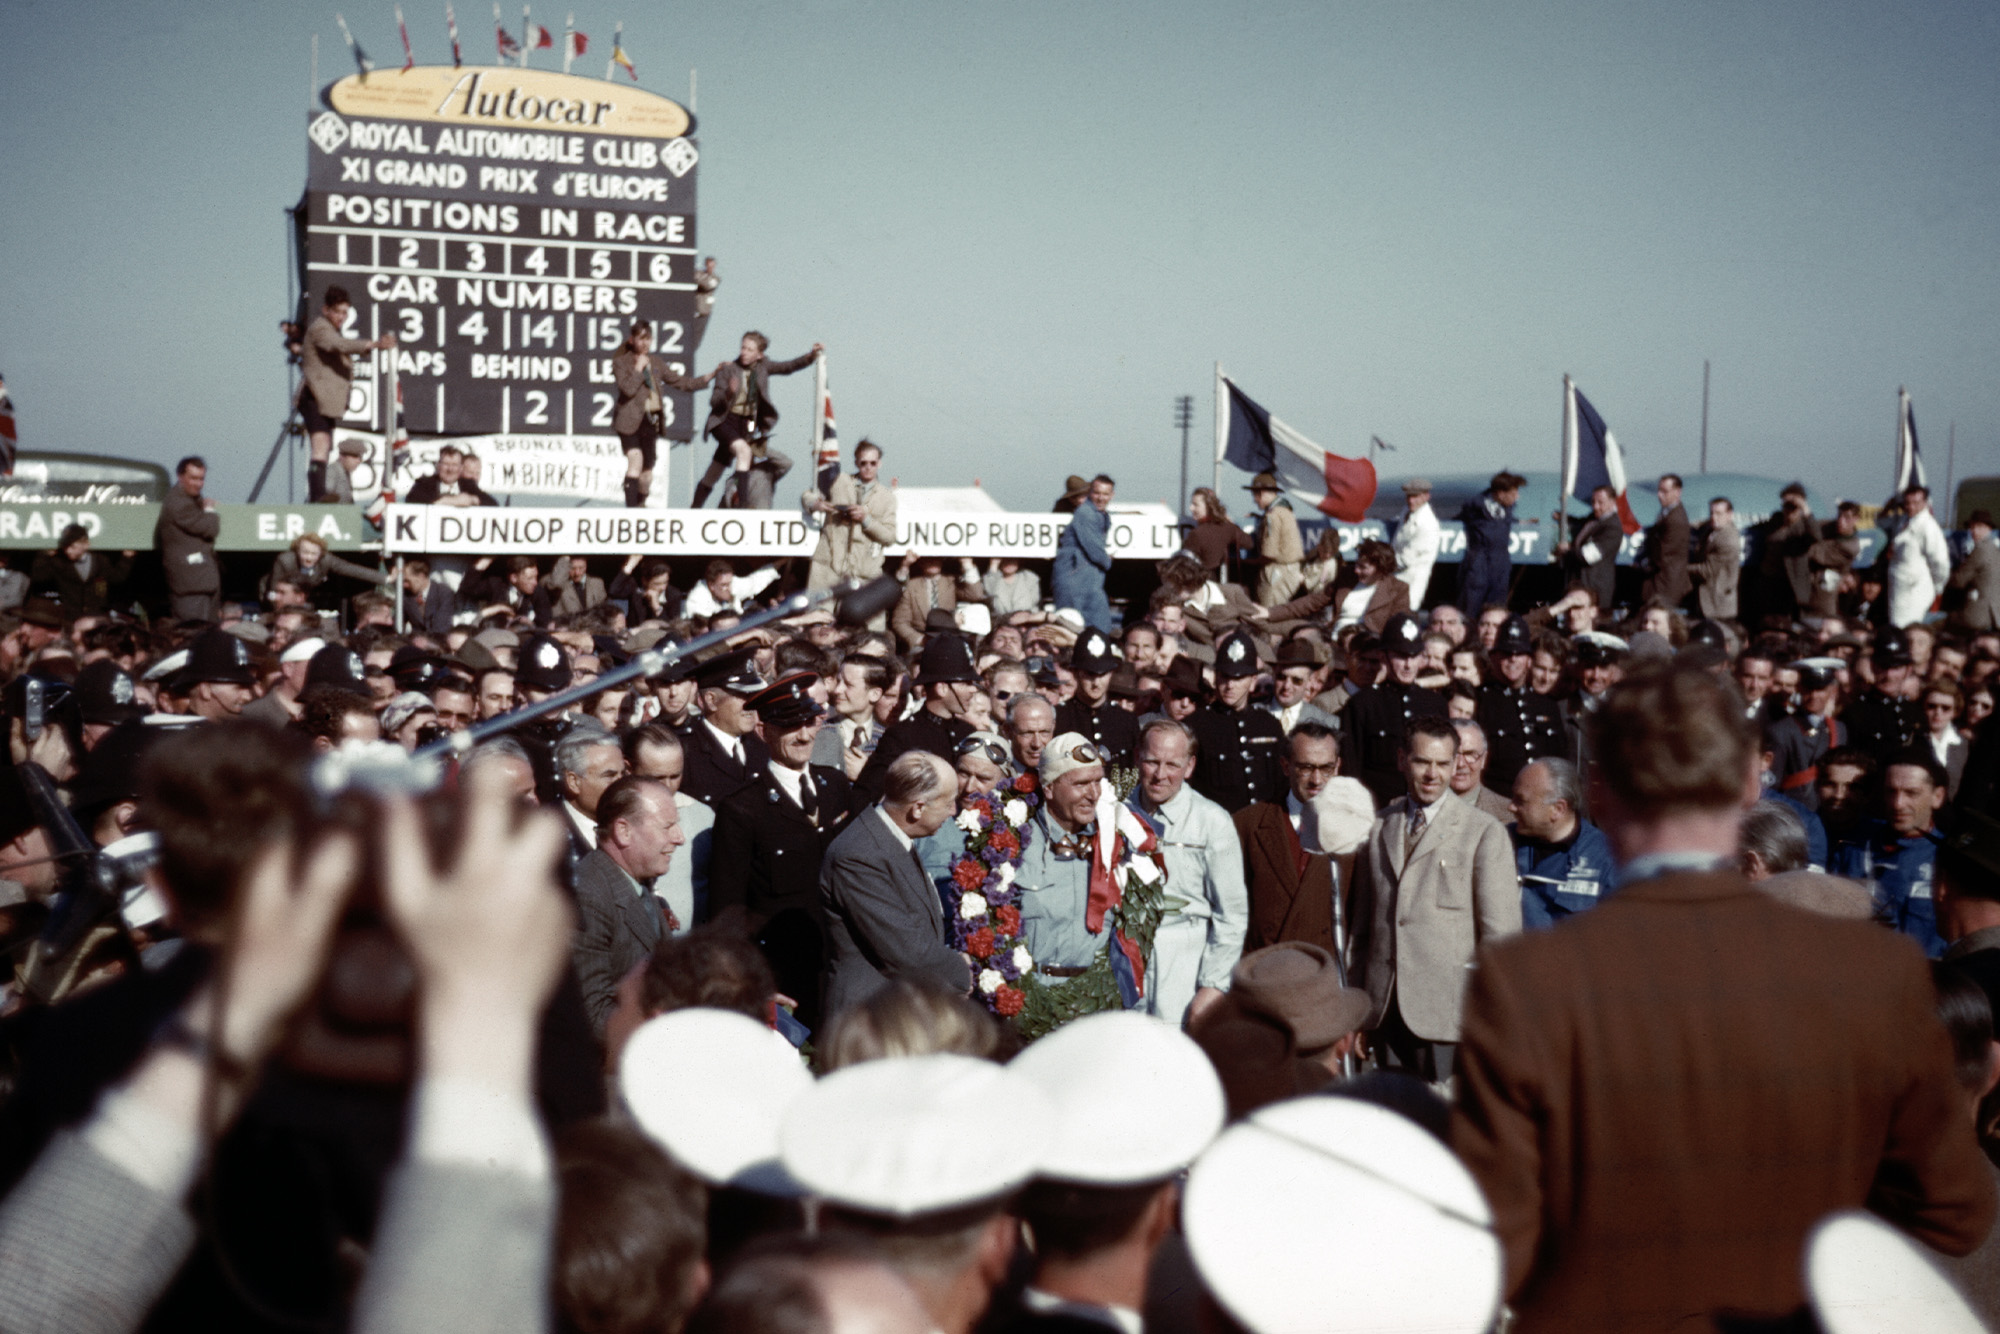 Crowds gather around Giuseppe Farina after he wins the 1950 British Grand Prix